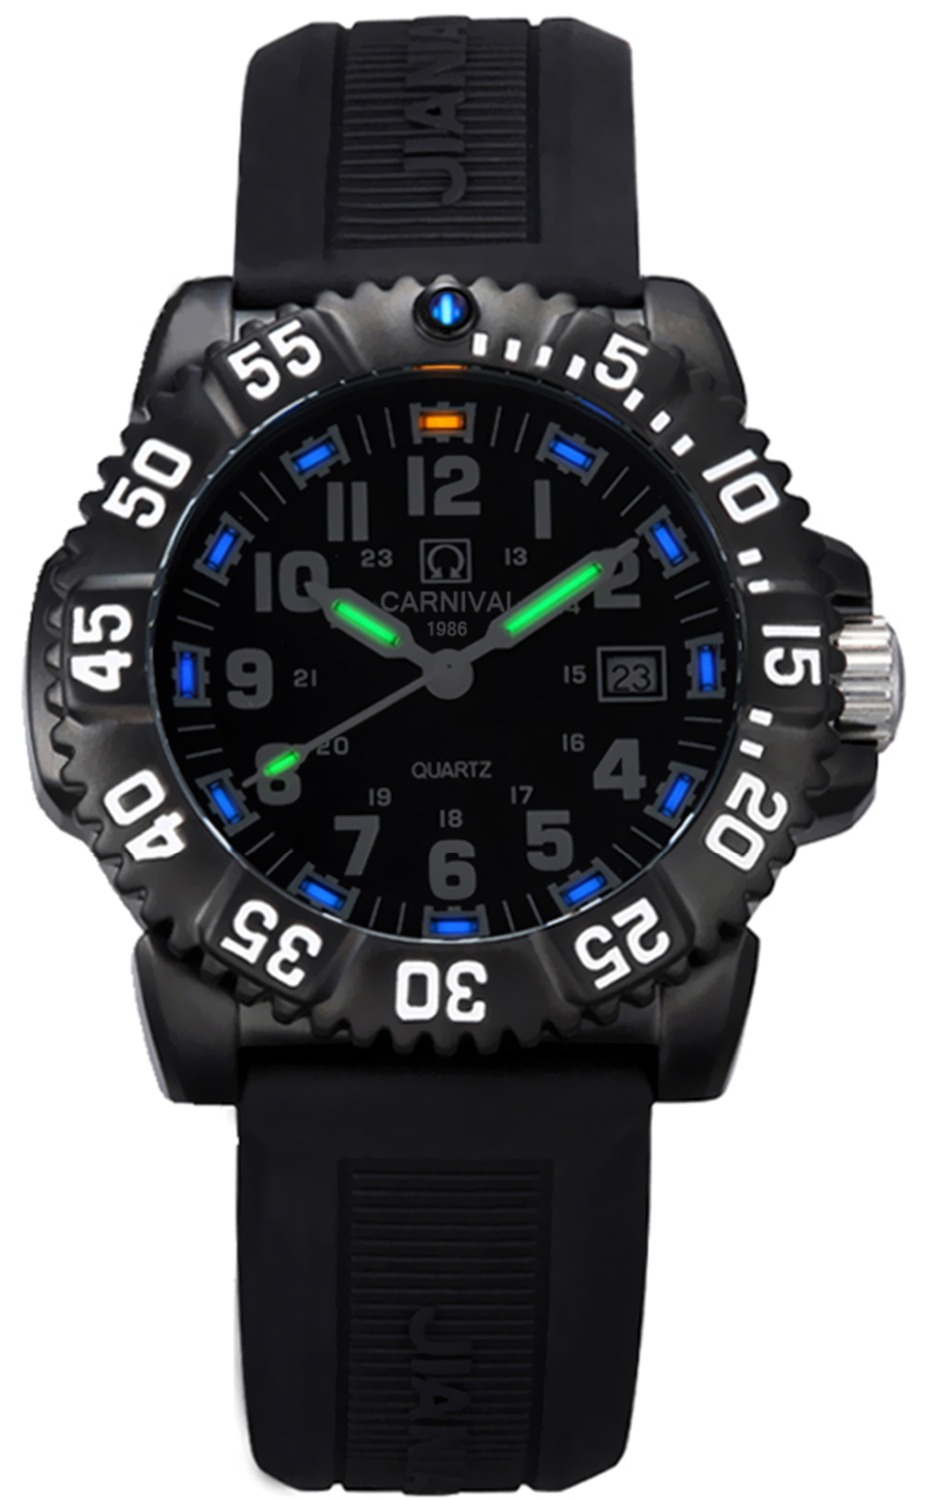 Carnival Men's Tritium luminous Watch H3 Rotatable Bezel Blue light Rubber Band Date Sport Military Quartz Waterproof Watches skone 5051 luminous pointers quartz watch men rotatable bezel wristwatch